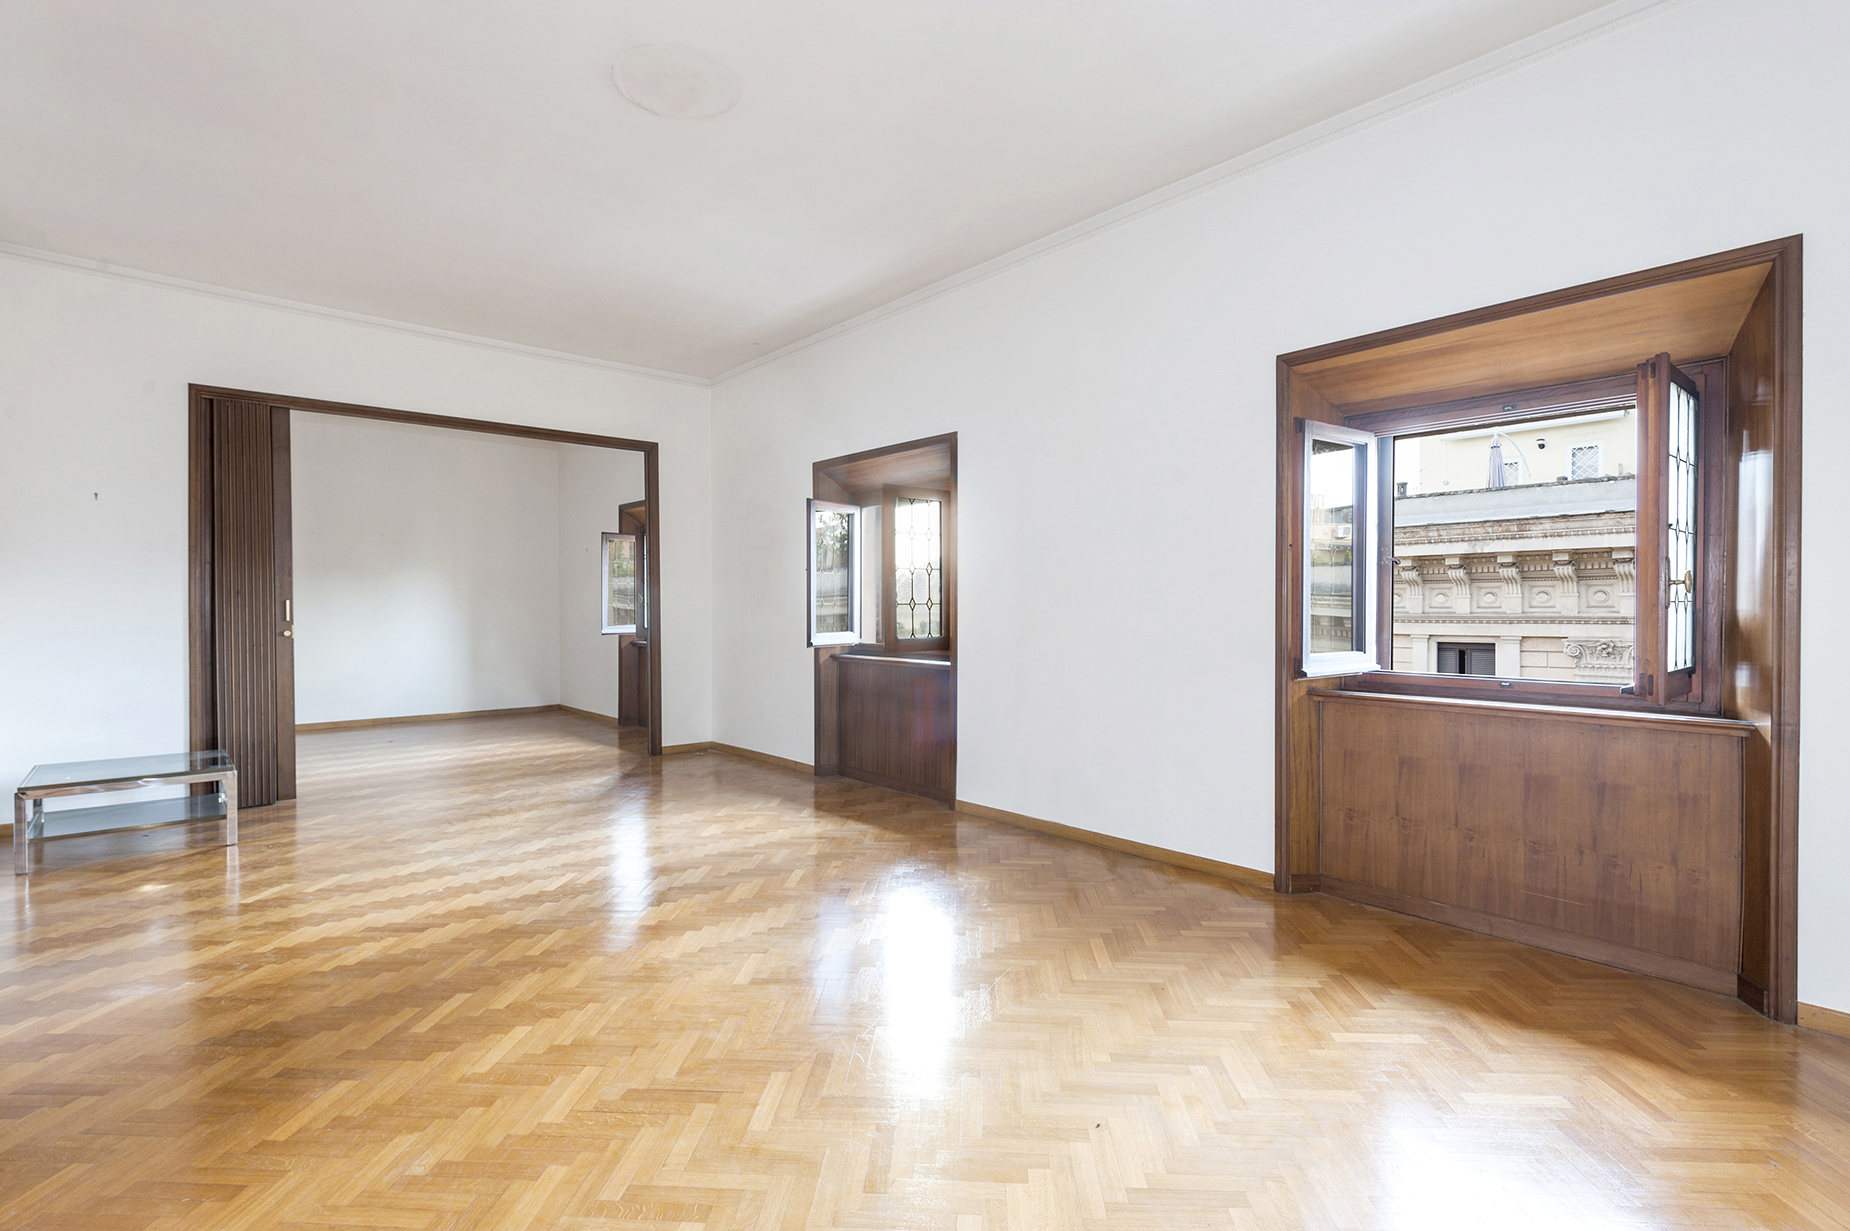 Apartamento por un Alquiler en Bright apartment in the Sallustiano neighborhood Via Piave Rome, Roma 00187 Italia